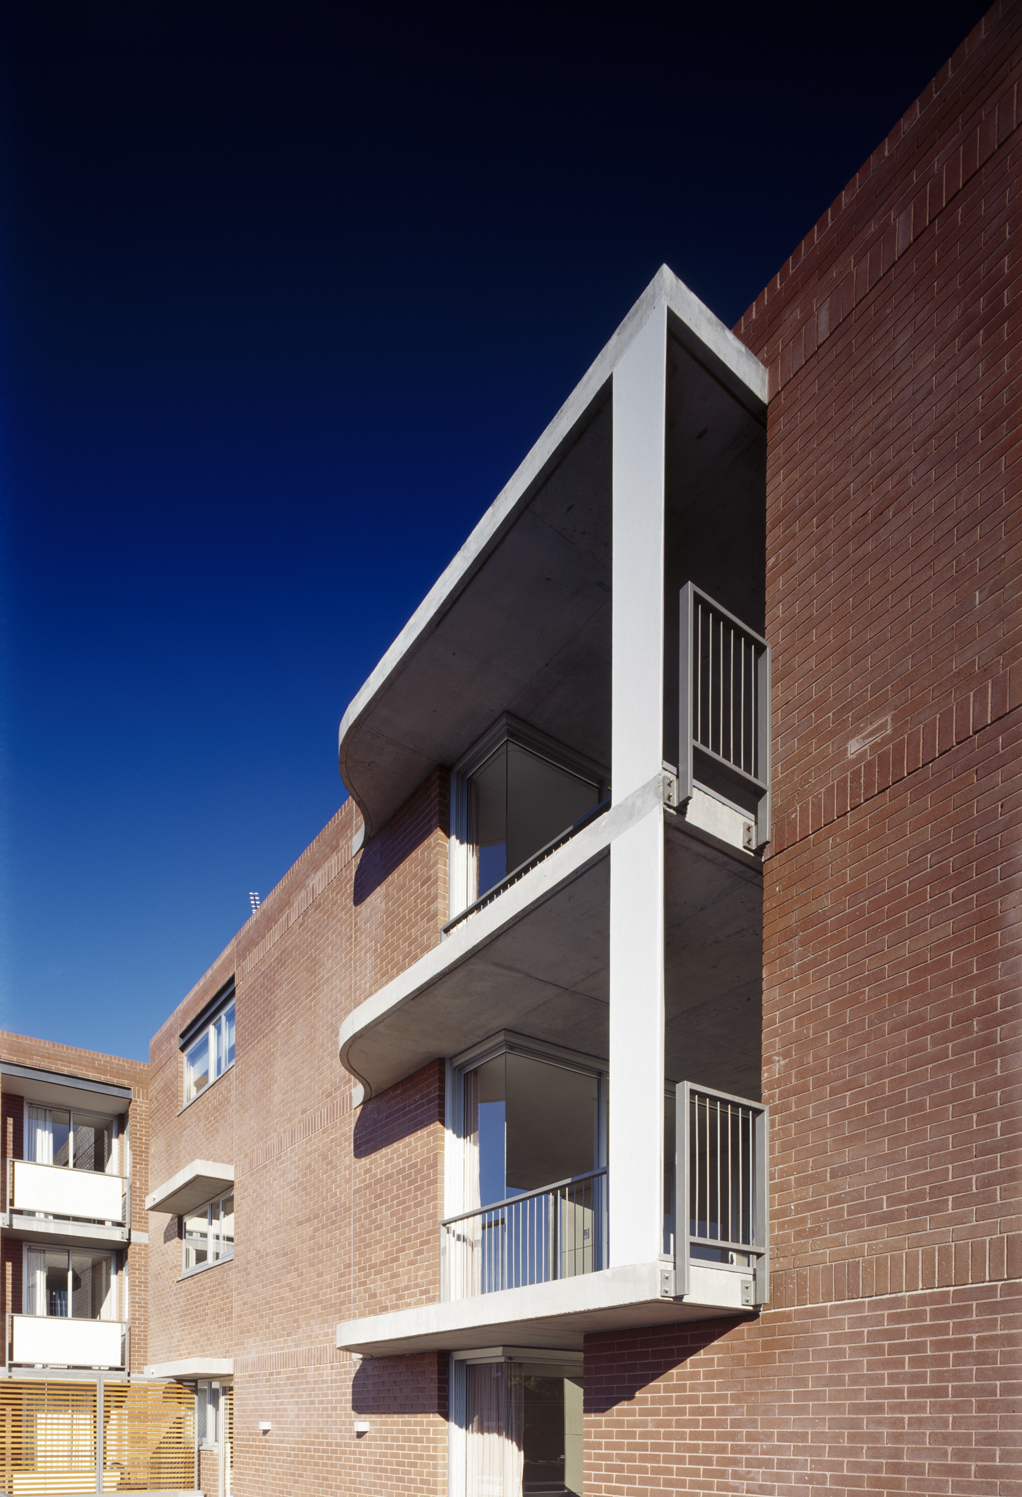 Rose Bay Apartments / Hill Thalis Architecture